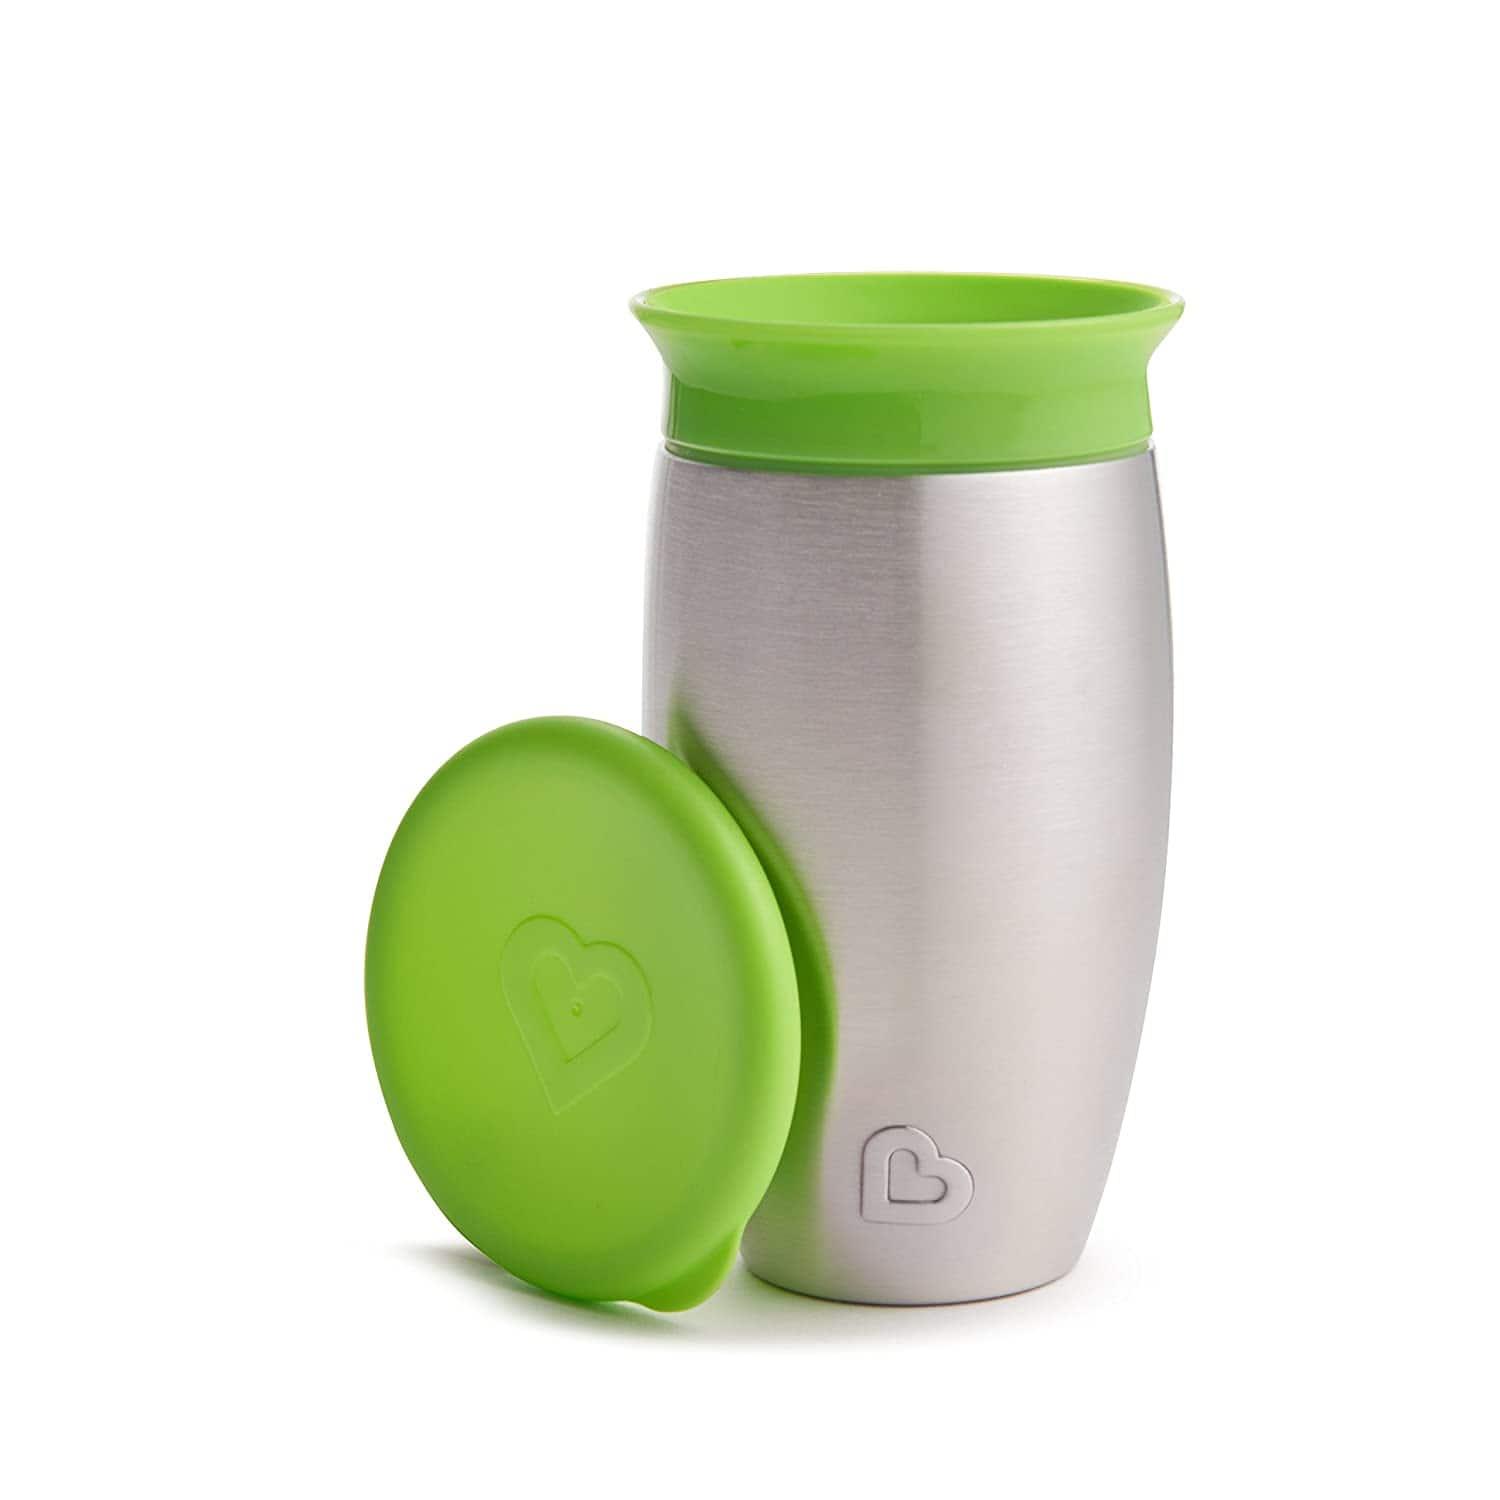 10-Oz Munchkin Miracle Stainless Steel 360 Sippy Cup (Green) $5.09 + Free S&H w/ Prime or orders $25+ ~ Amazon